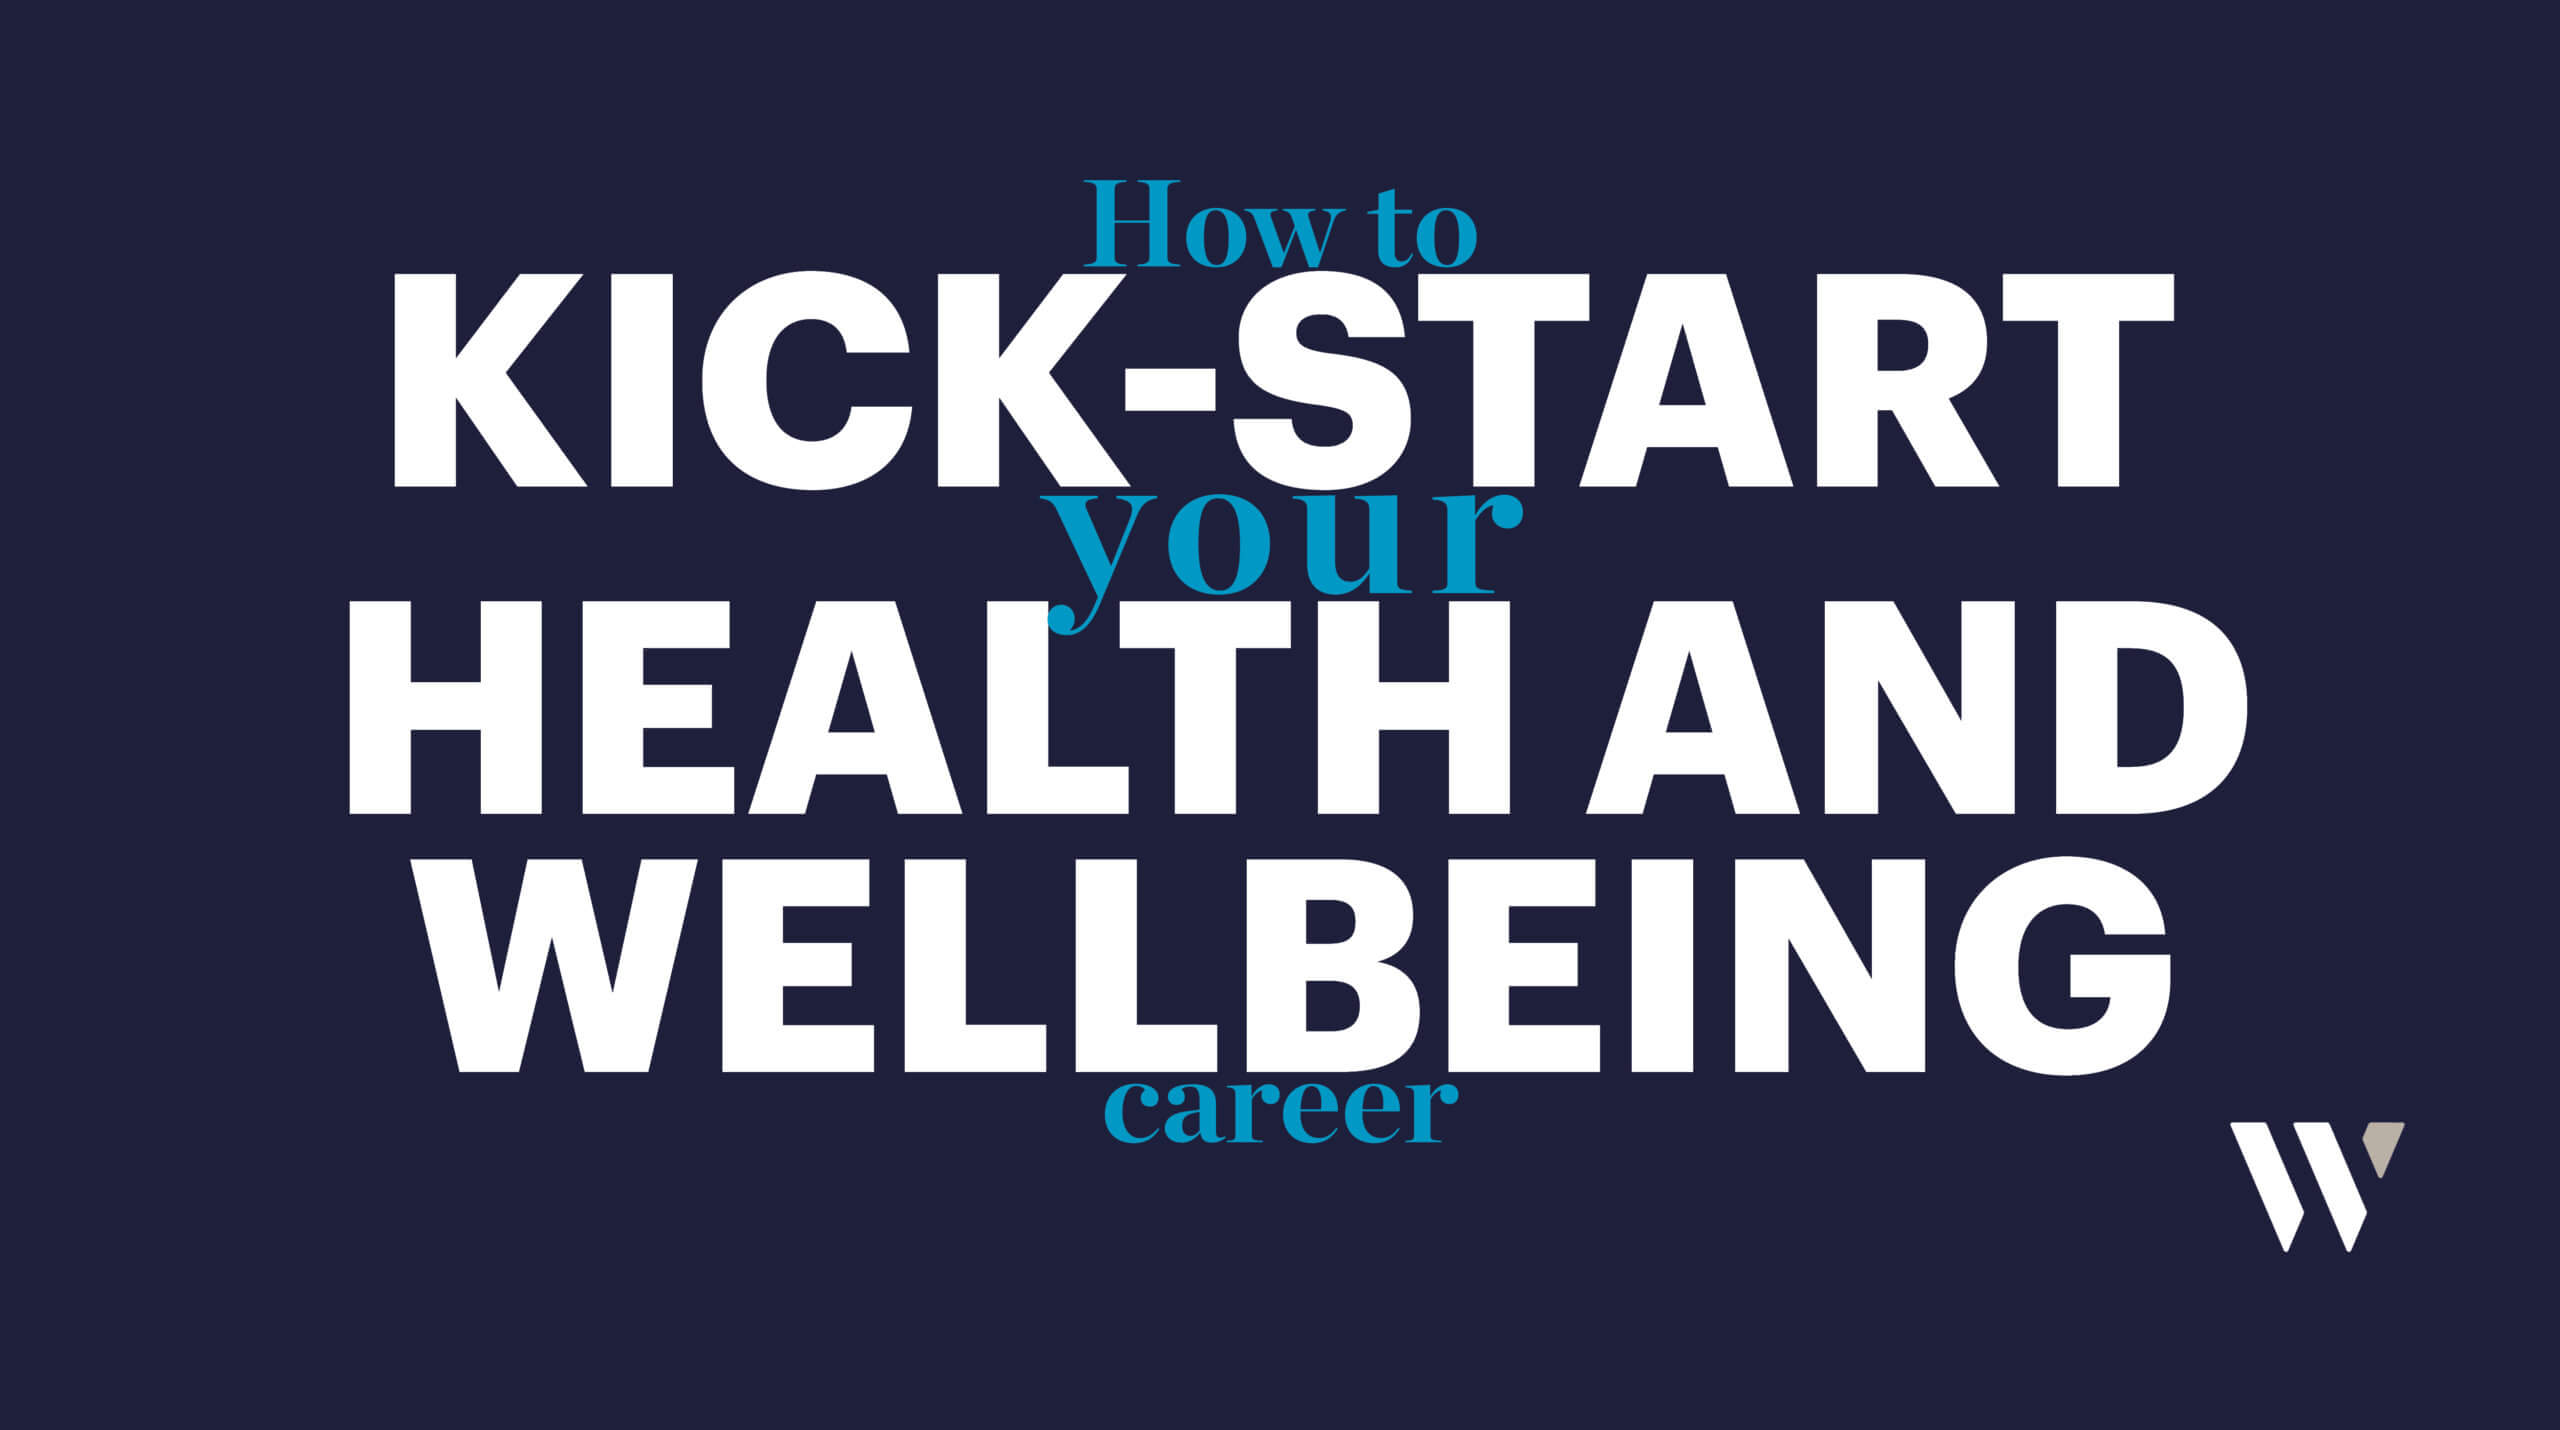 How to kick-start your health and wellbeing career